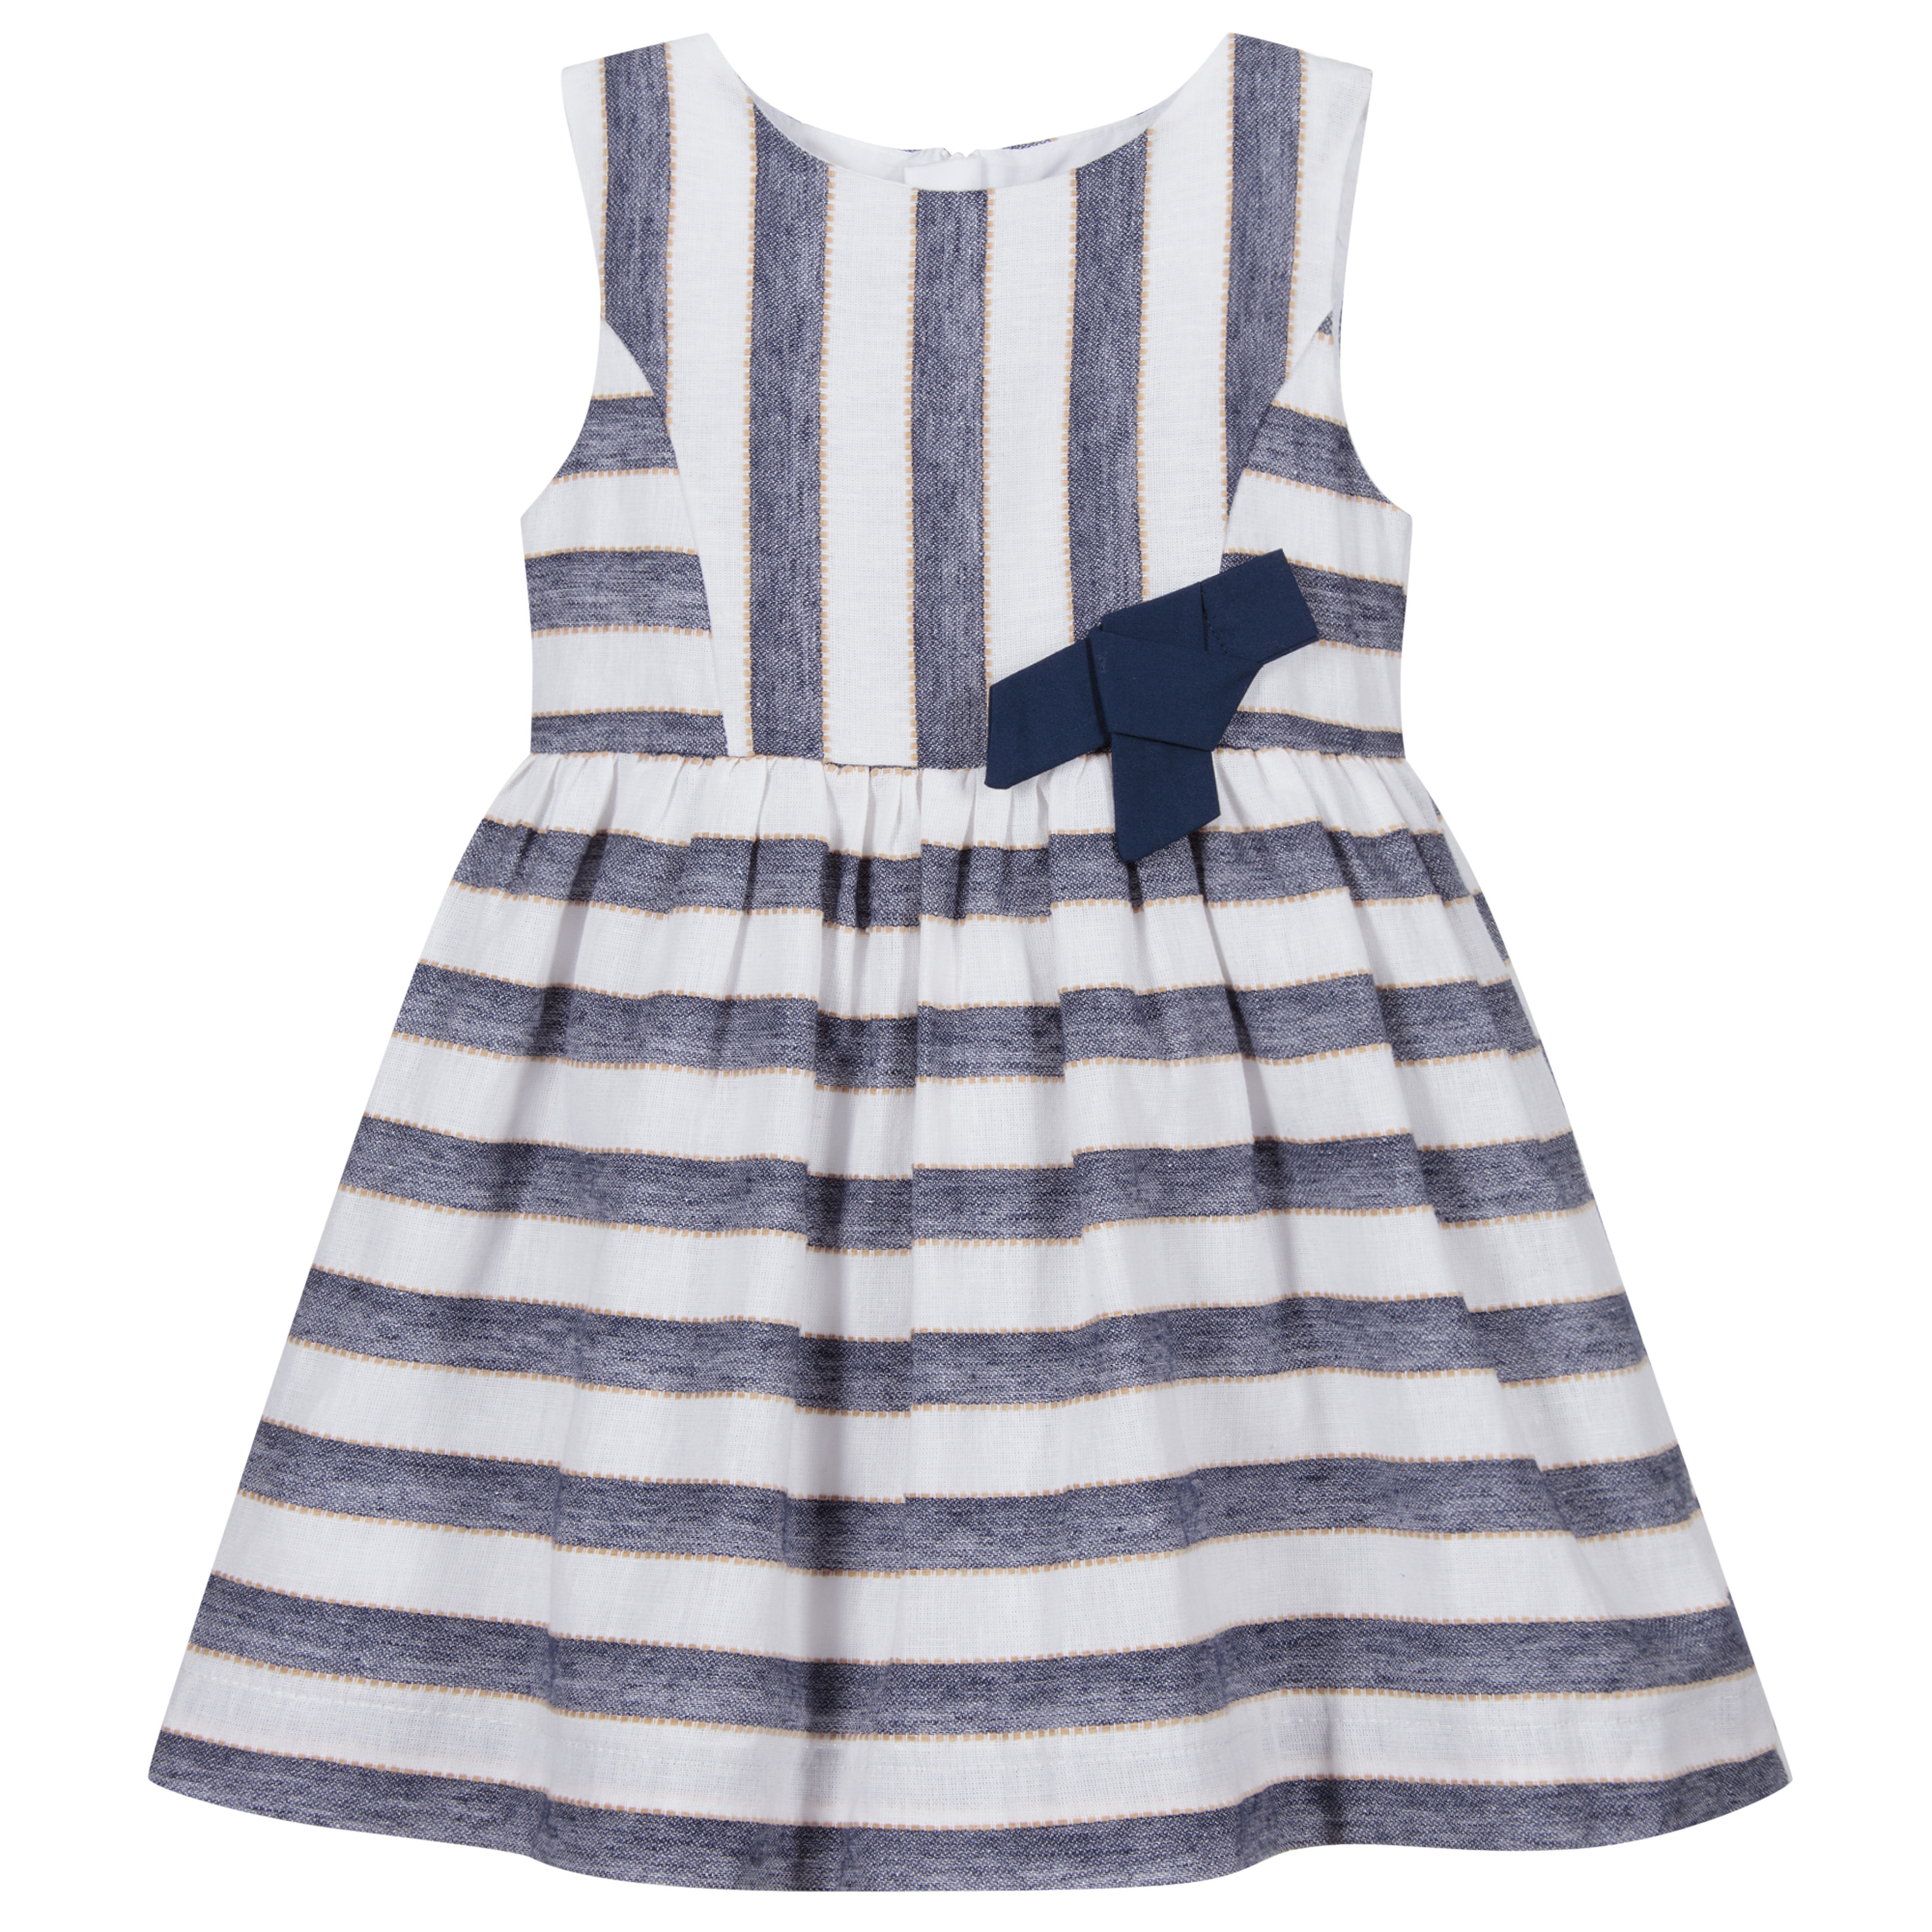 Bnwt Mayoral girls navy and white stripe lined dress